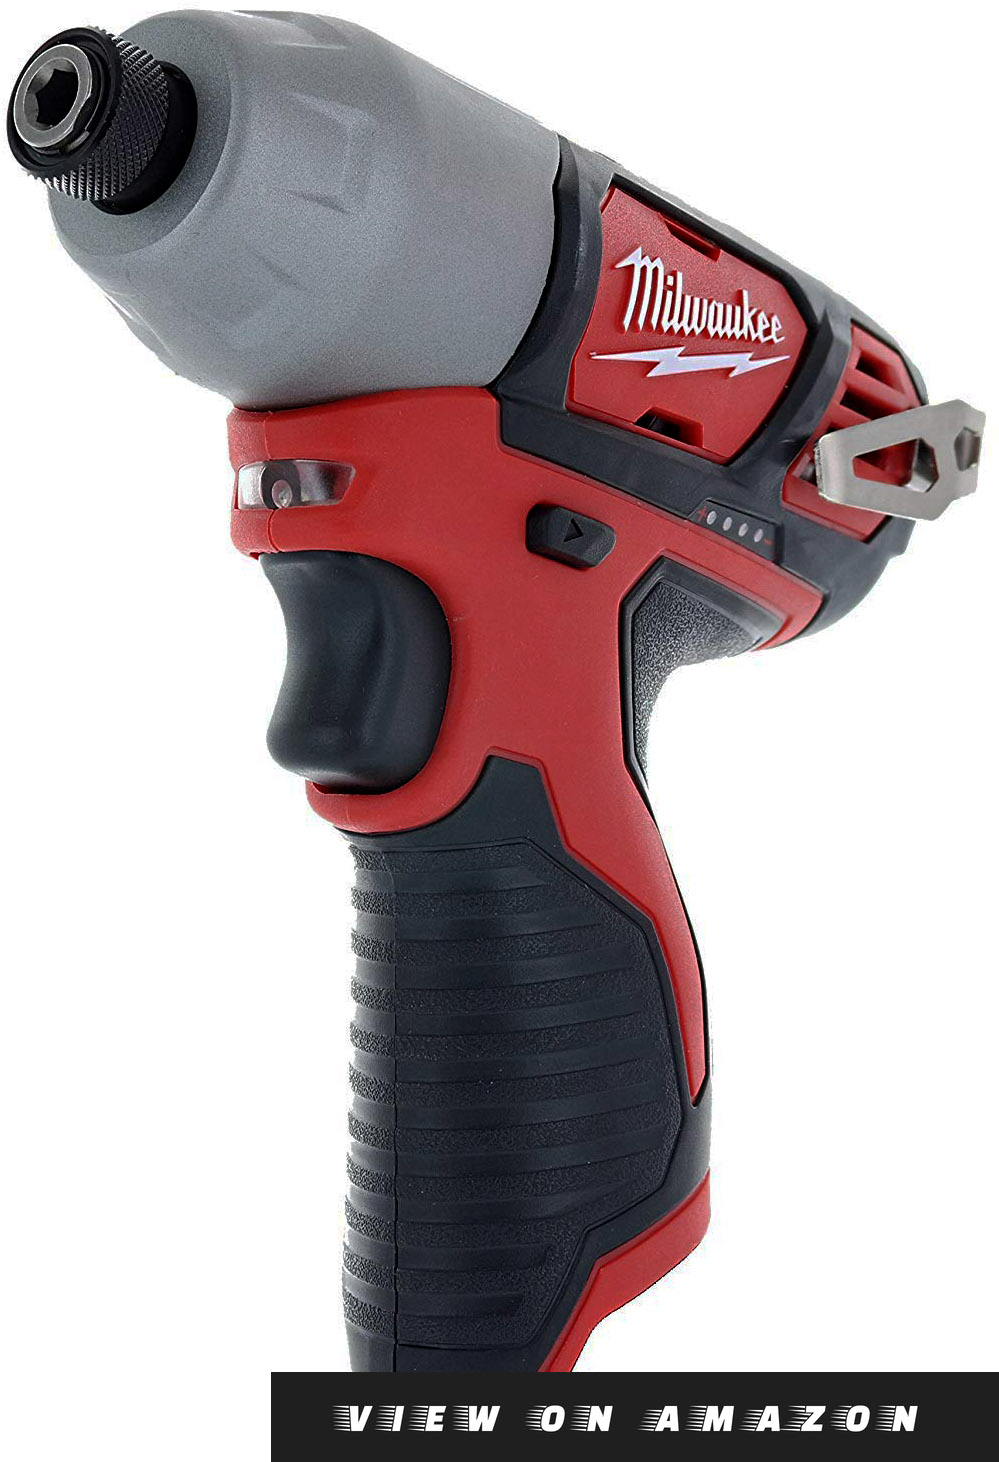 milwaukee impact drivers for sale